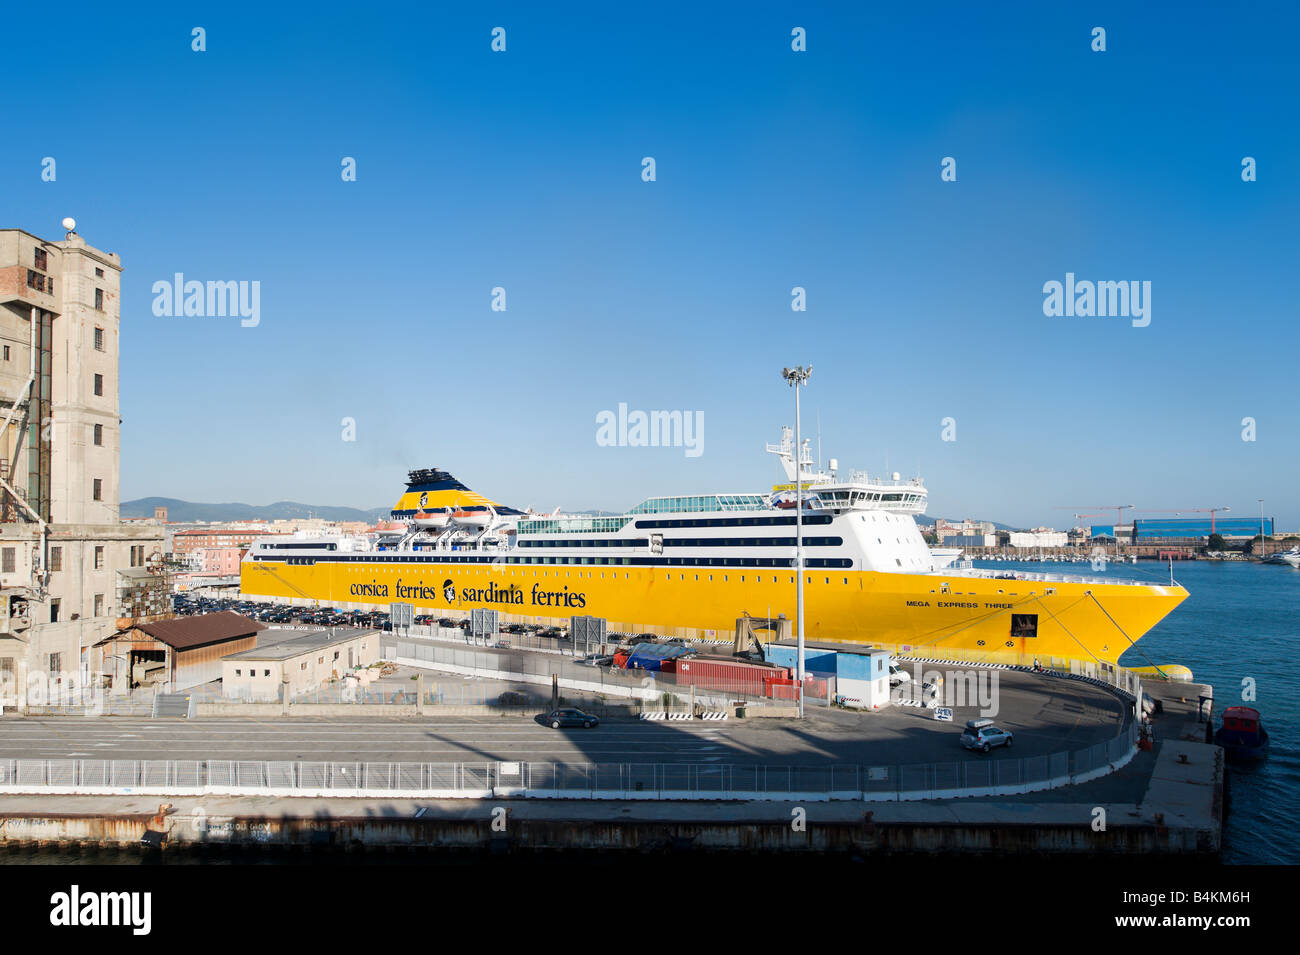 Corsica and Sardinia Ferries Car Ferry in the port of Livorno, Tuscany, Italy - Stock Image